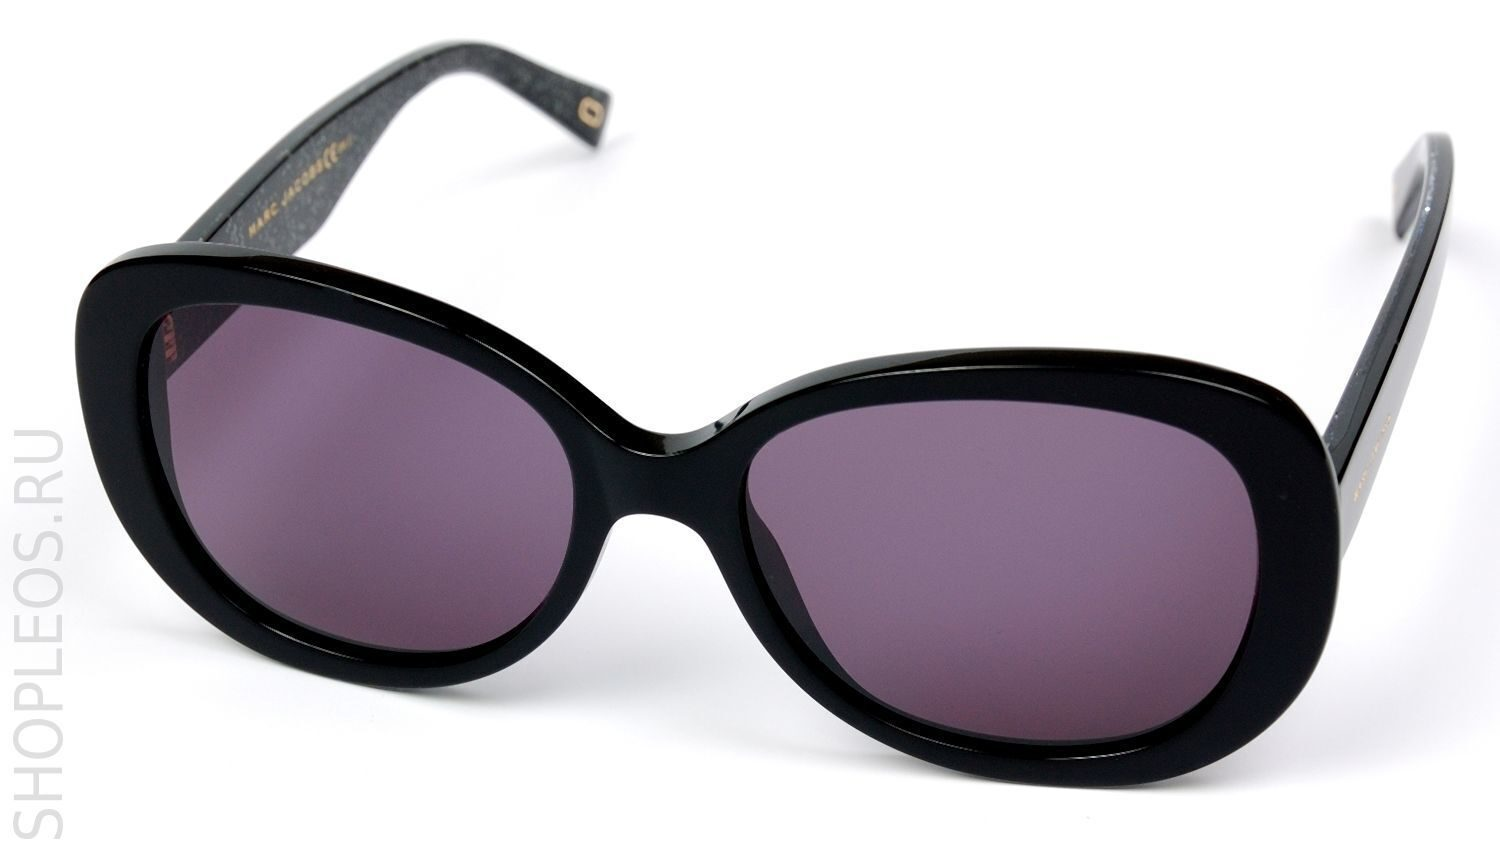 MARC JACOBS WOMAN MARC 261/S NS8